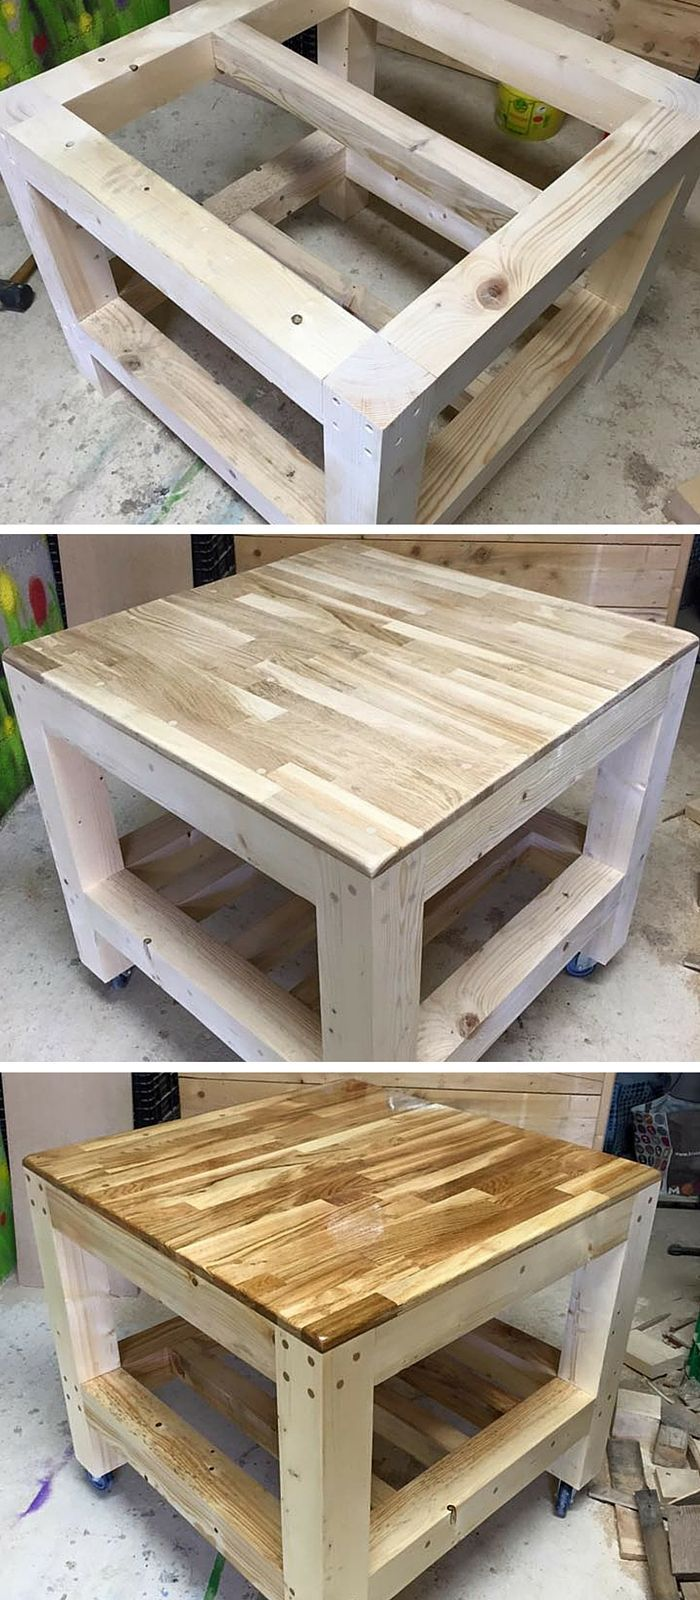 we have today this DIY pallet square